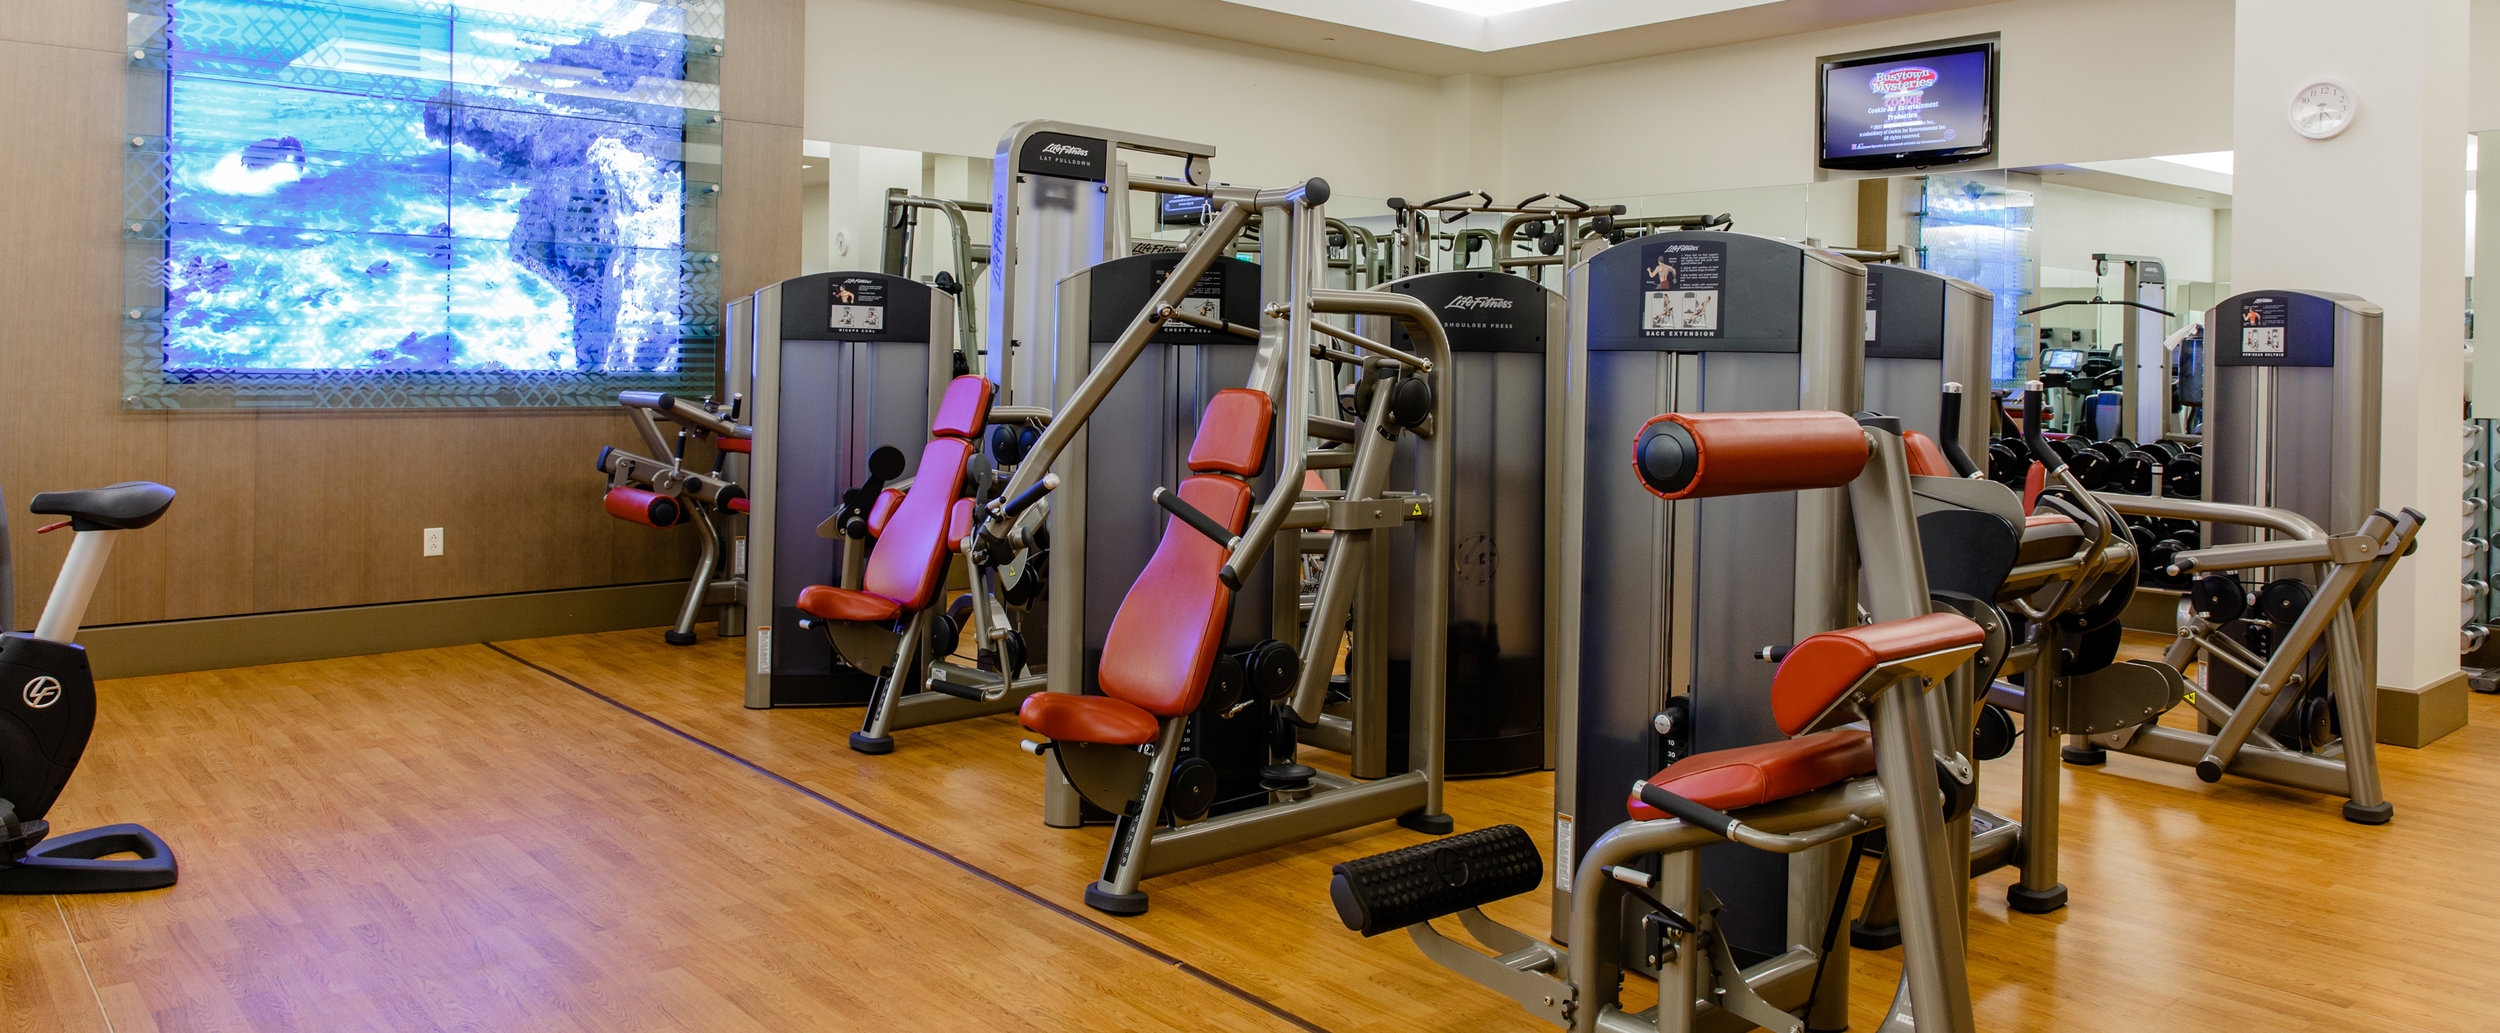 aulani-laniwai-spa-and-fitness-center-equipment-machines-presses-g.jpg